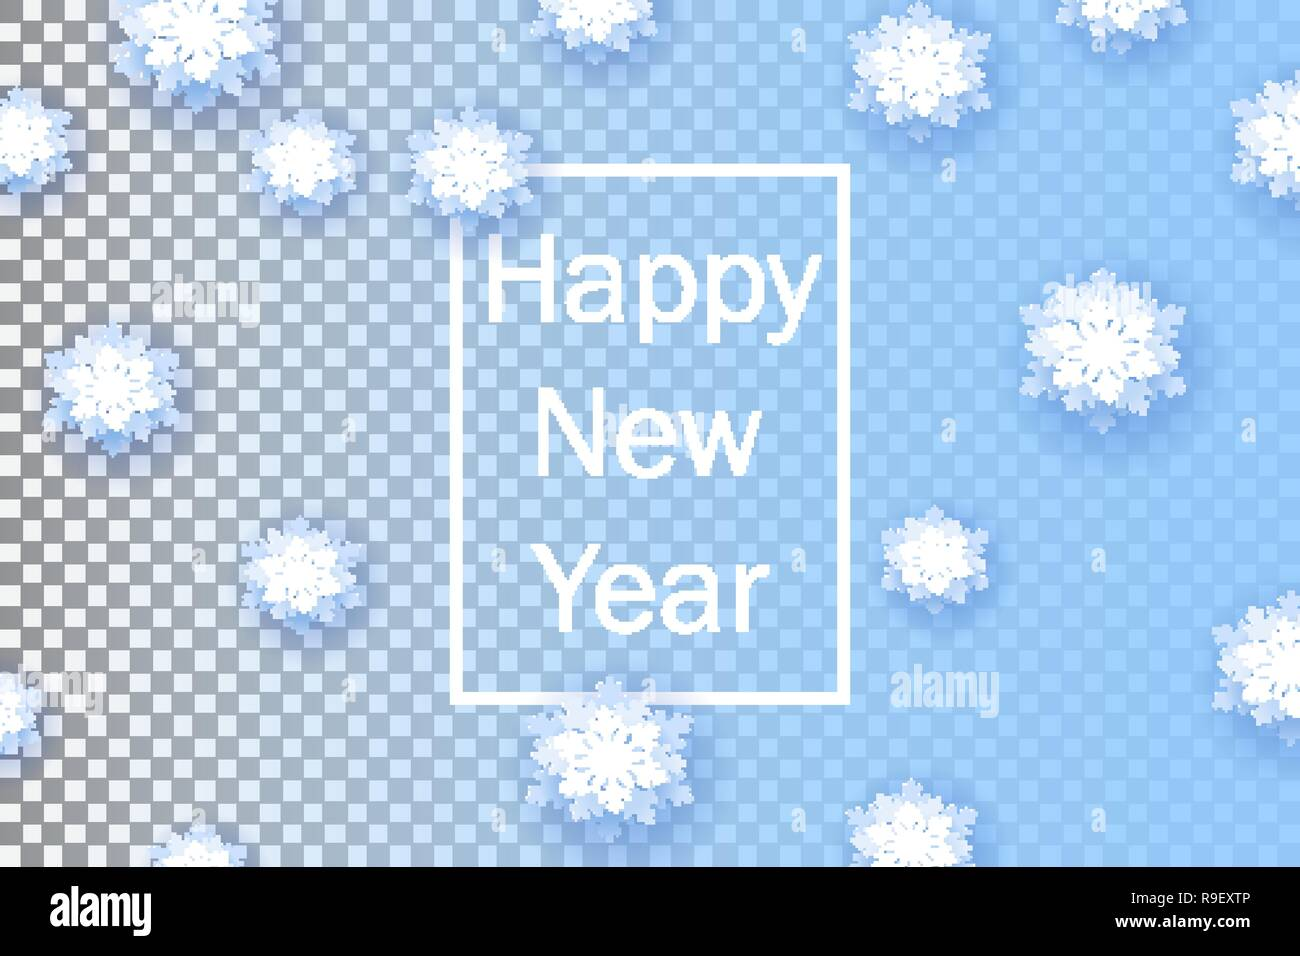 Happy New Year Transparent Background 93